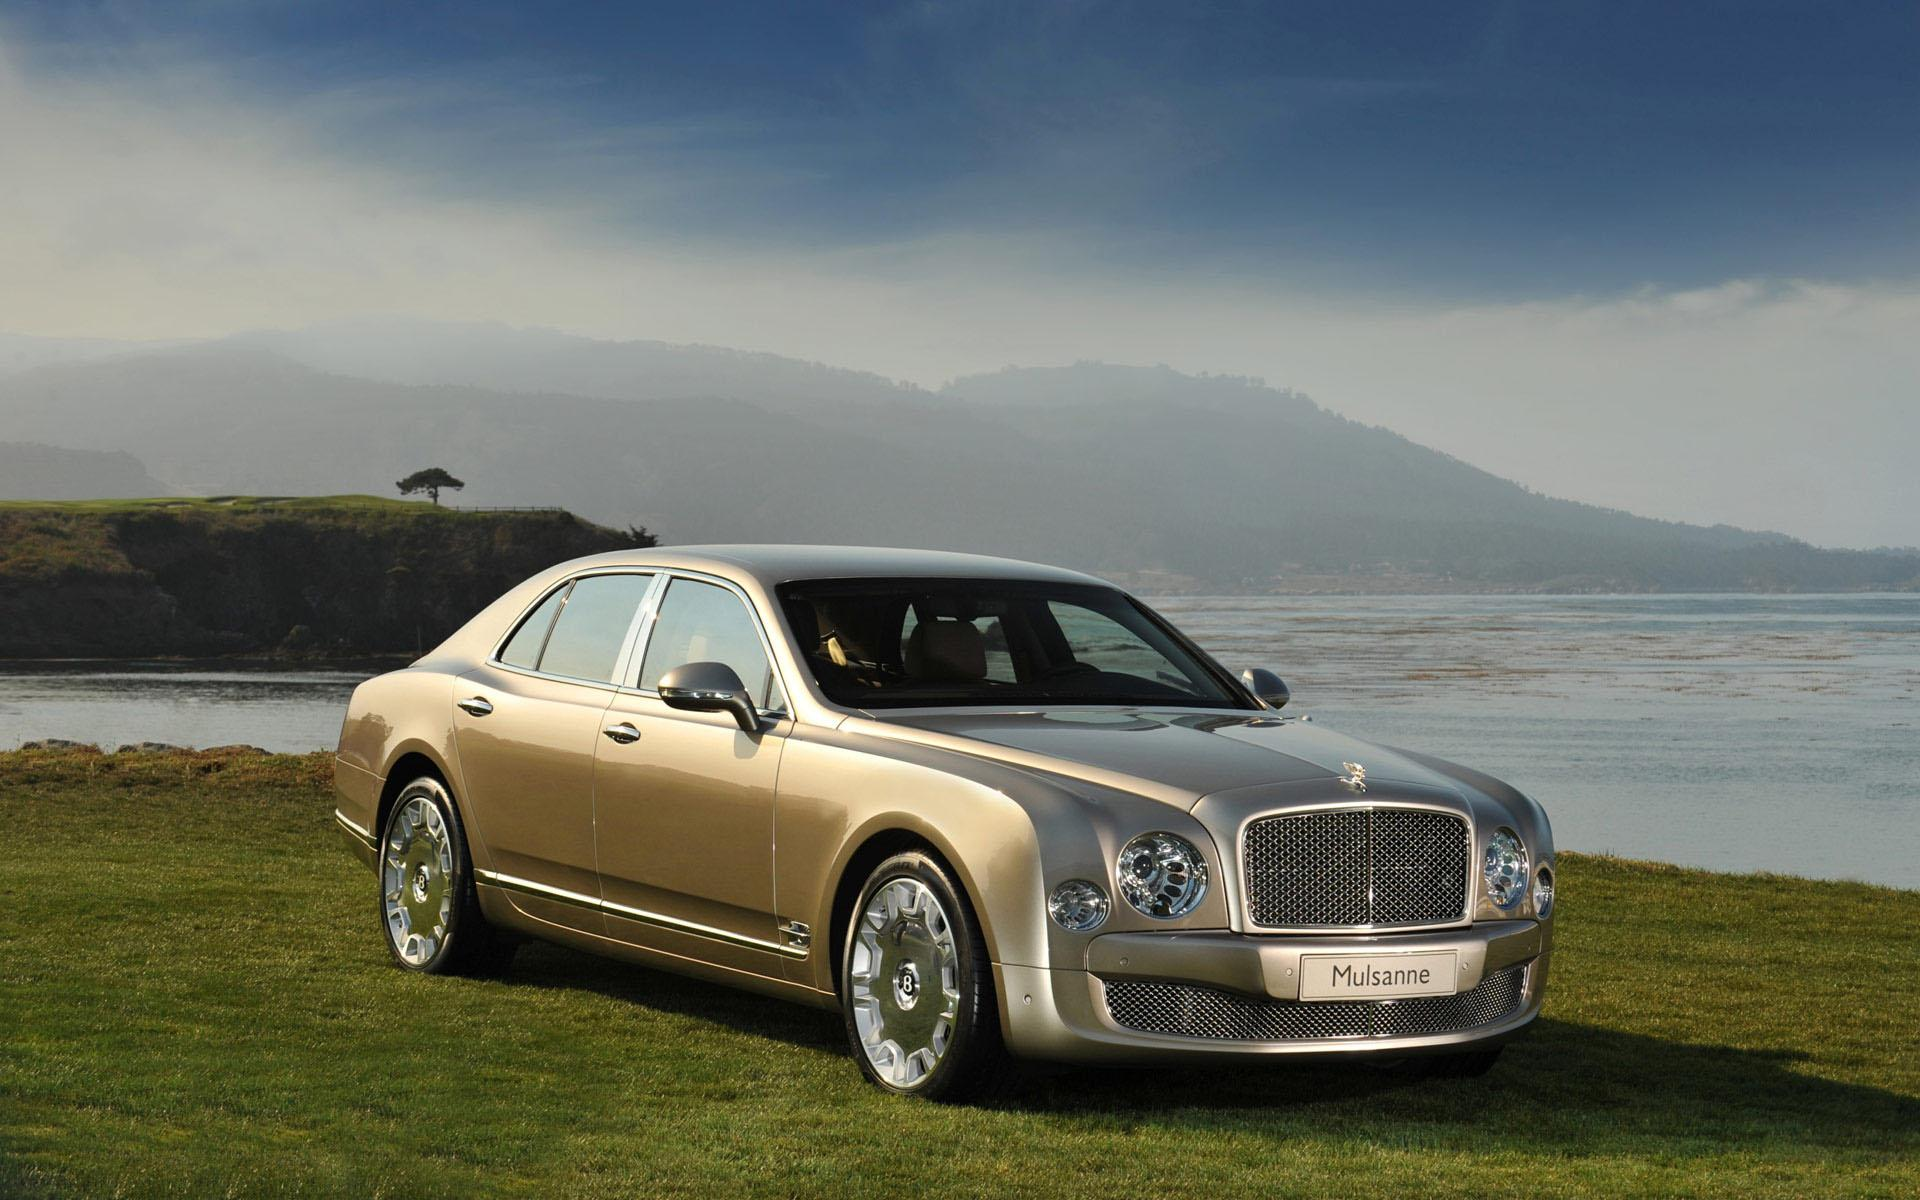 Обои Bentley mulsanne на траве 1920x1200